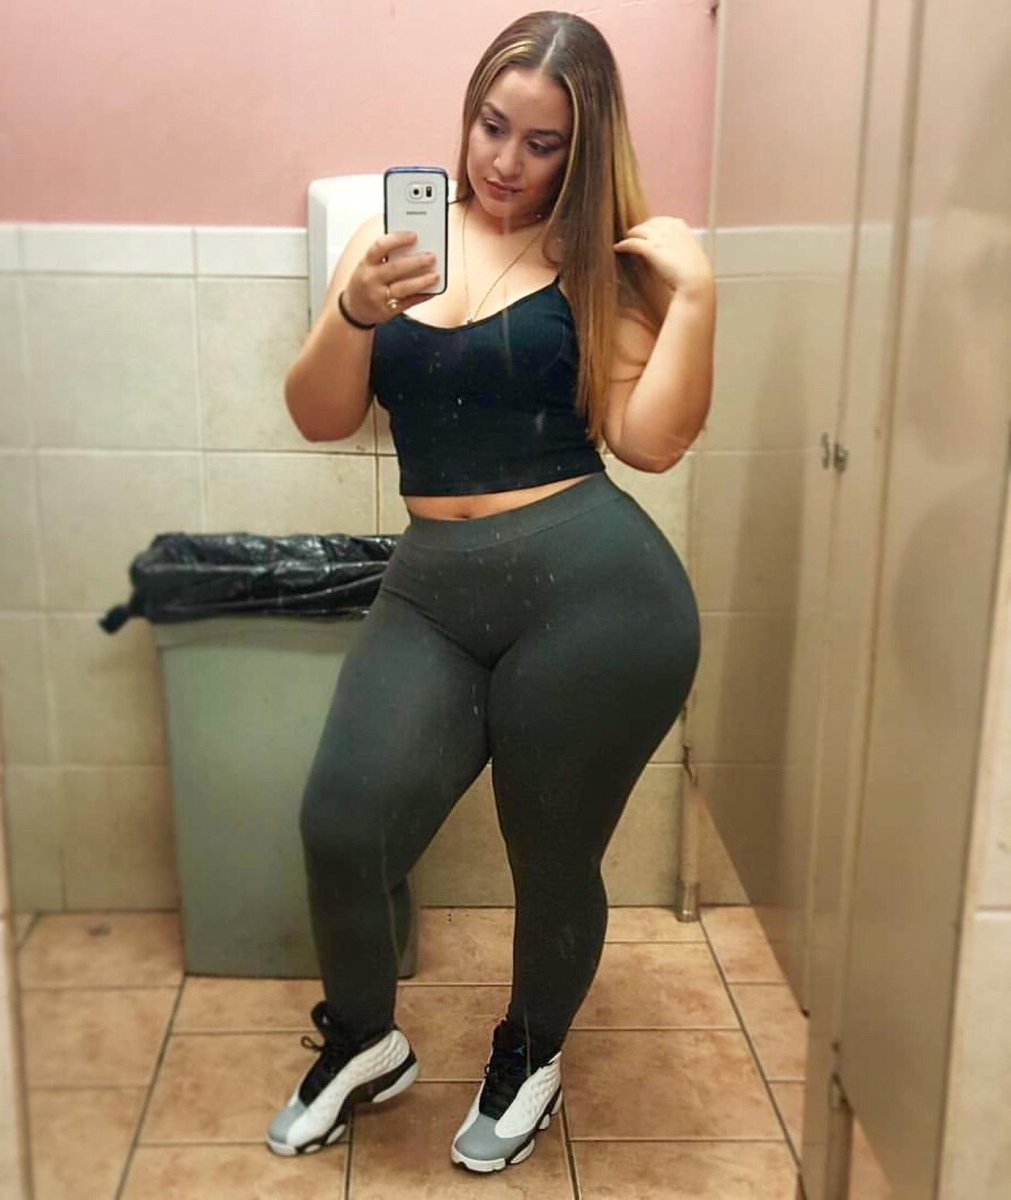 Pawg phat ass white girls videos and galleries bang-4039